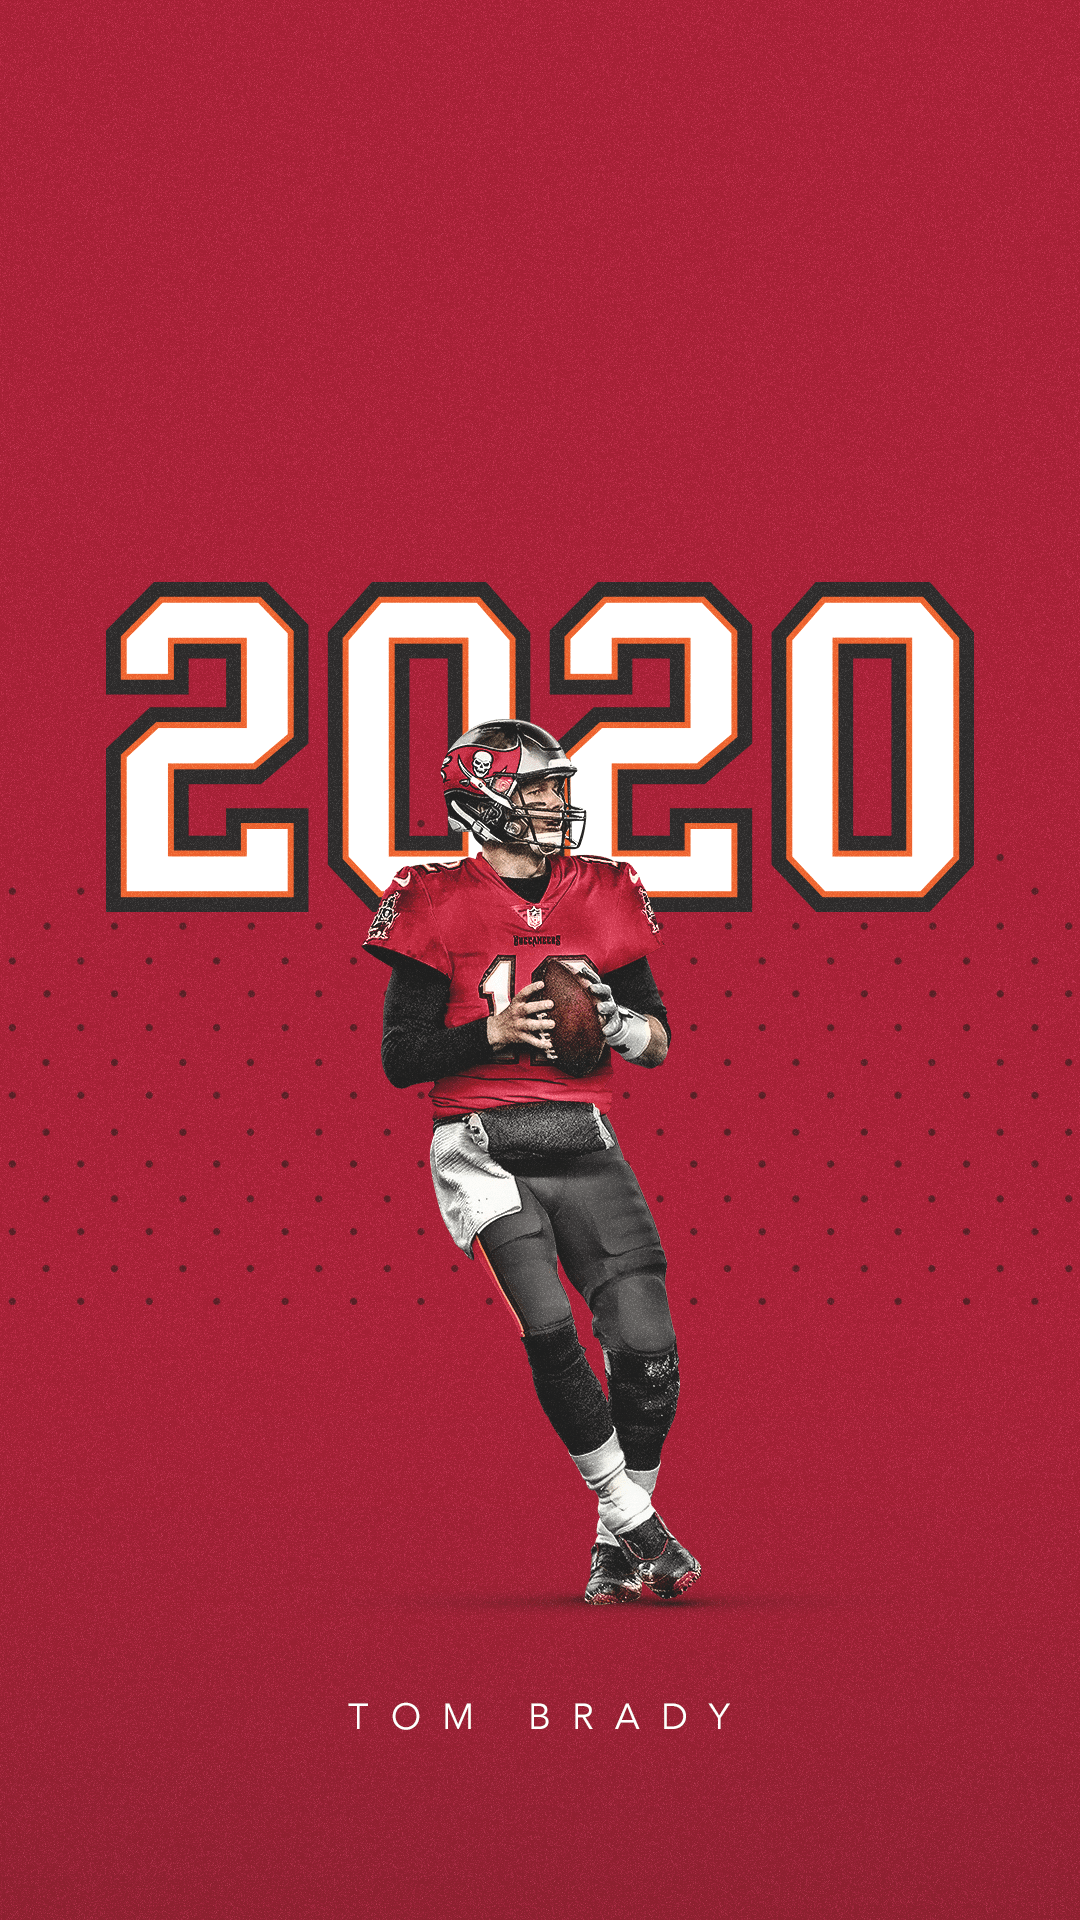 Tampa Bay Buccaneers 2020 Wallpapers On Behance In 2020 Tampa Bay Buccaneers Buccaneers Tampa